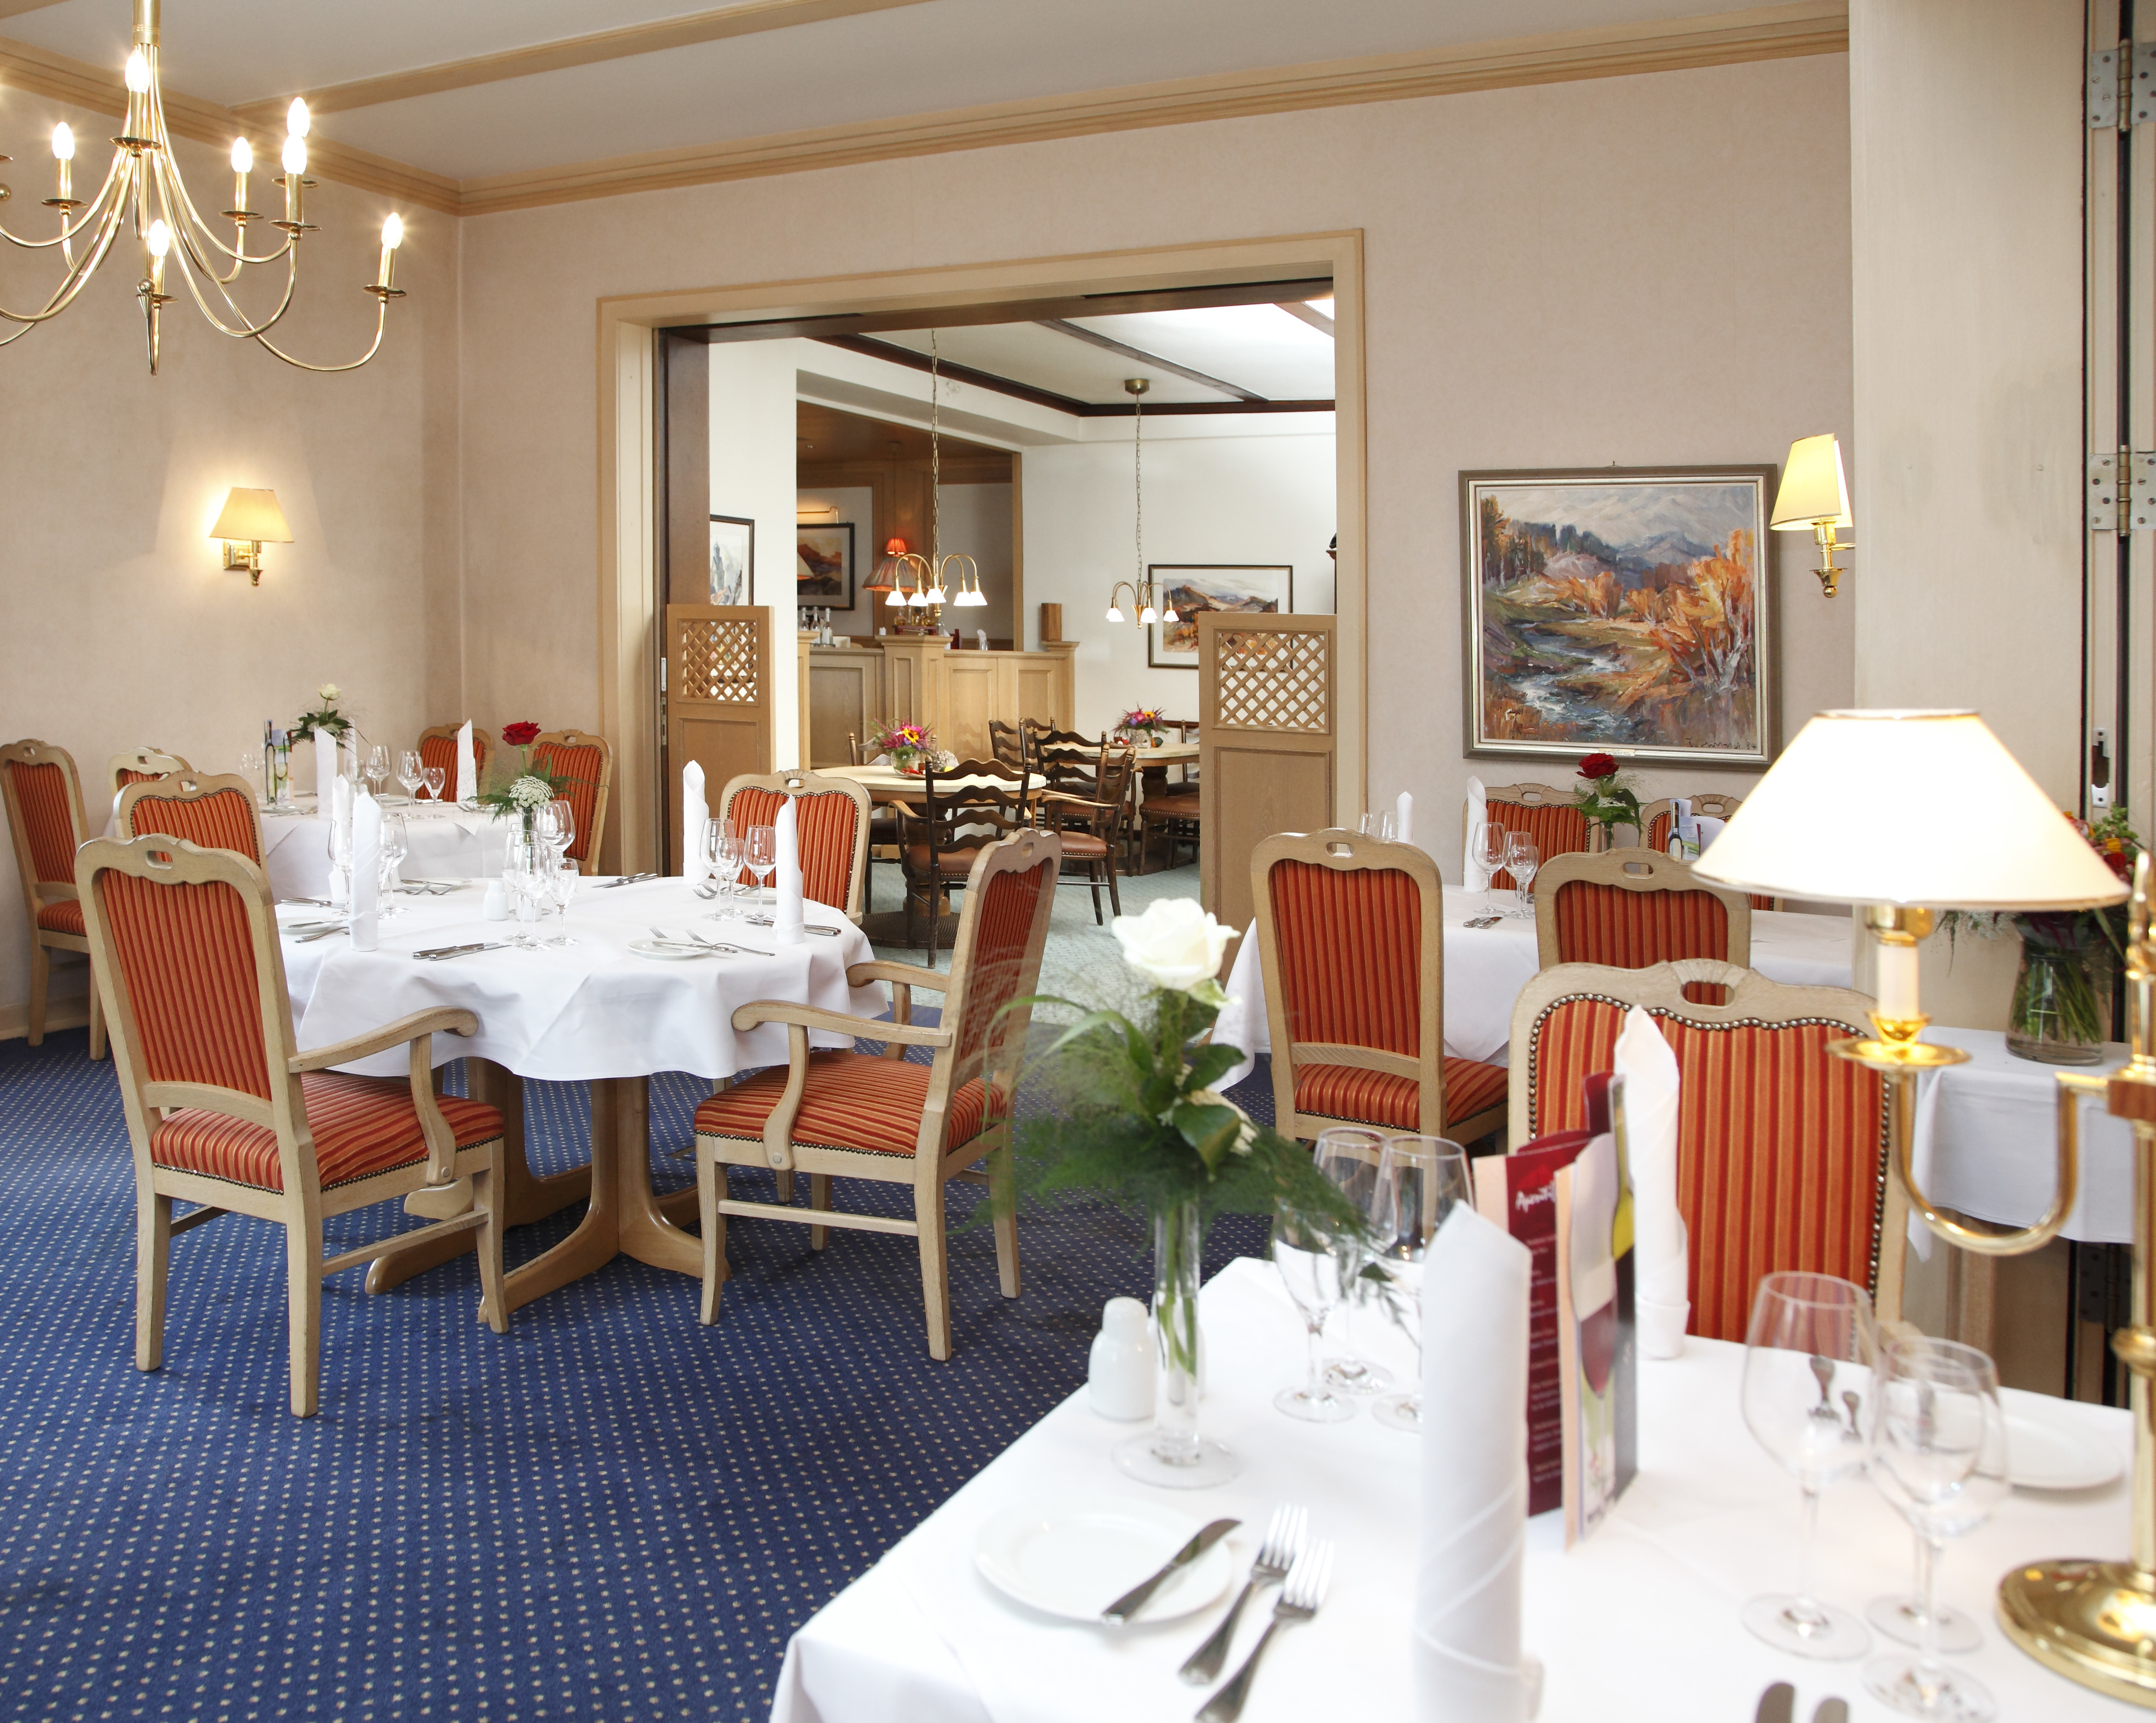 Our guests awaits a creative, sophisticated cuisine composed of a fine selection of regionally and seasonally interpreted dishes in the restaurant of the Ringhotel Posthotel Usseln in Willingen, 4-star hotel in Sauerland